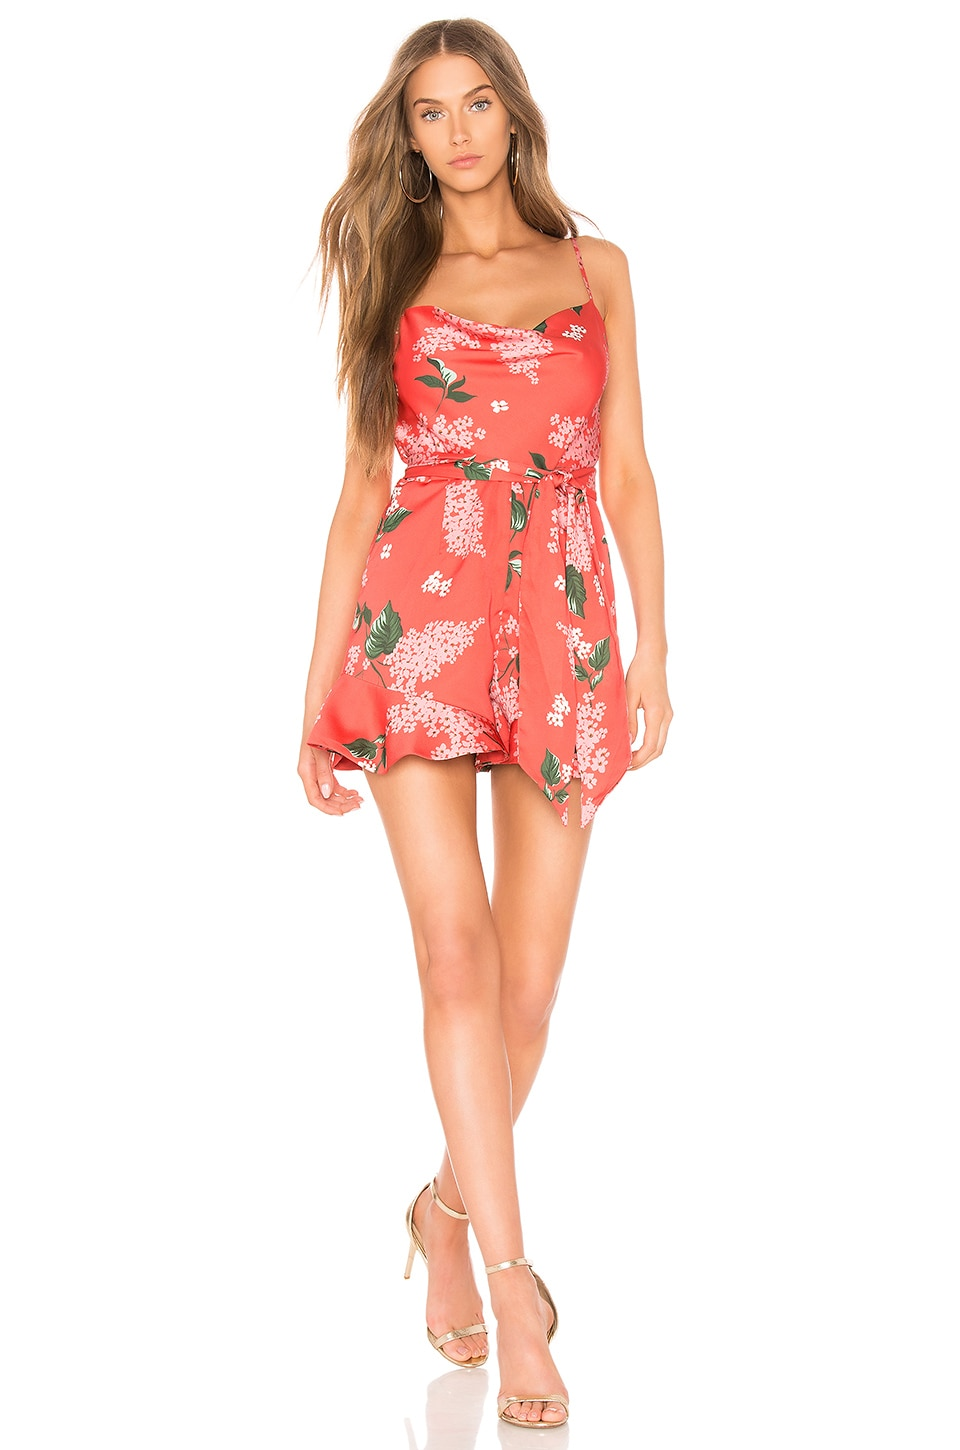 a22fa935e25 keepsake This Moment Romper in Pop Red Floral